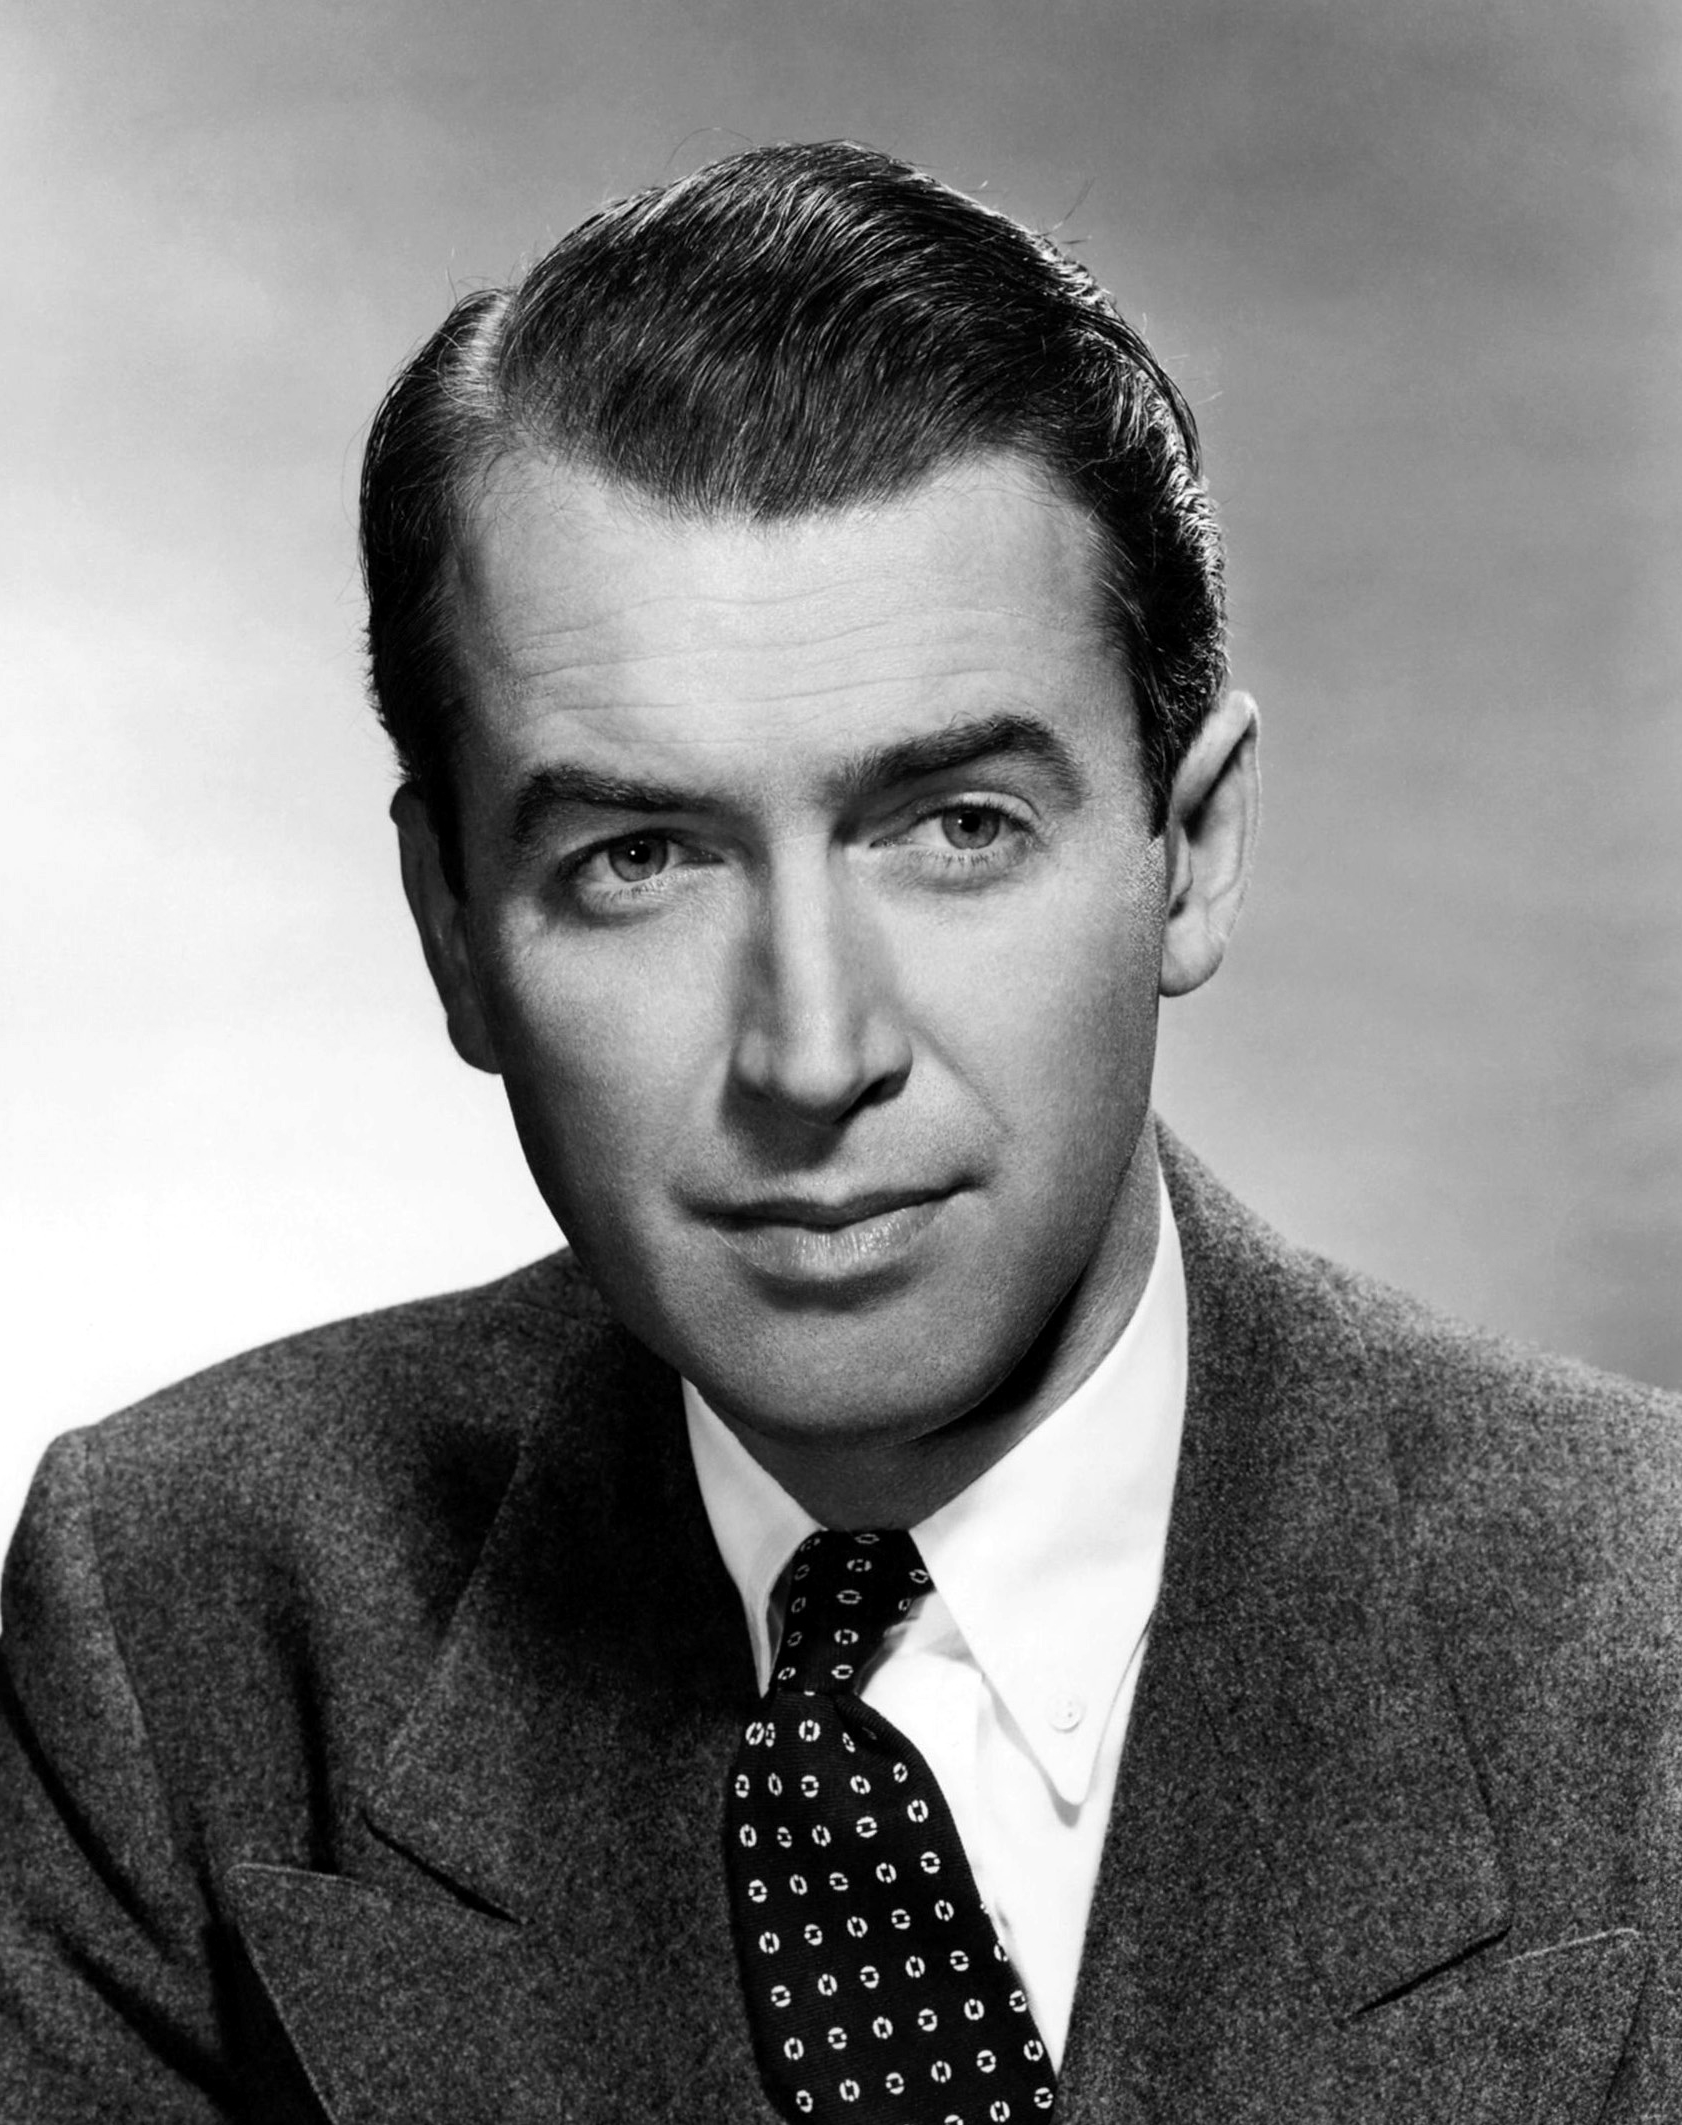 Major James Stewart in 1943